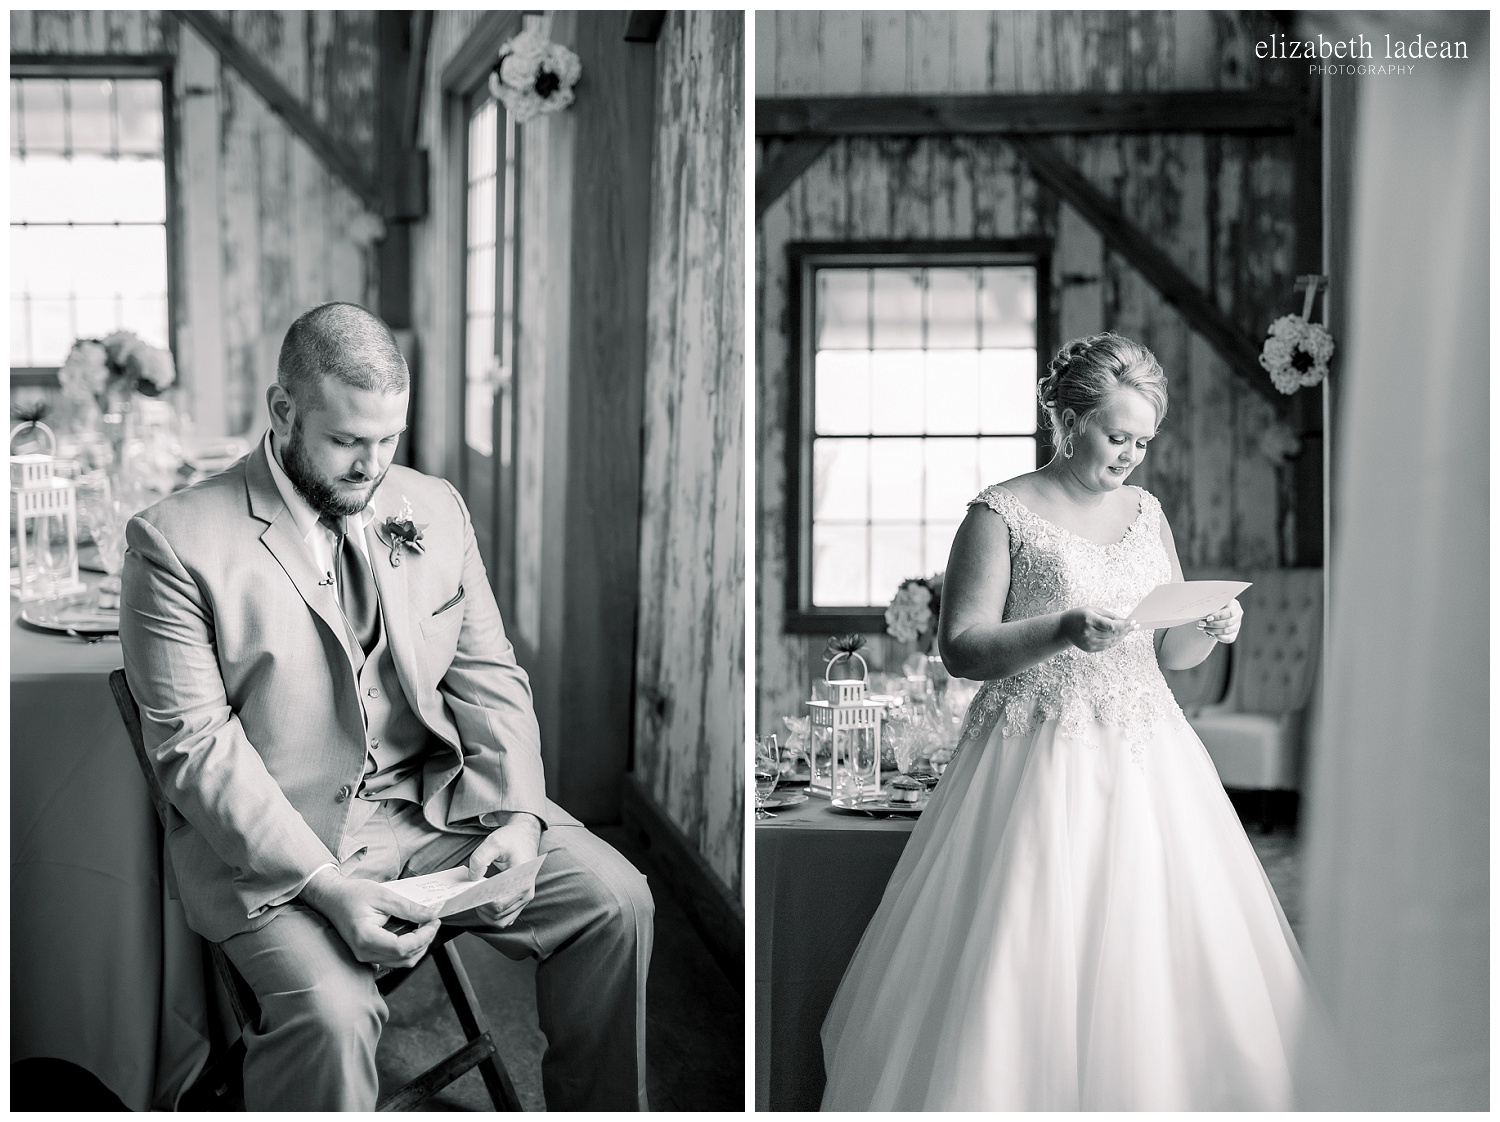 Weston-Timber-Barn-Wedding-Photography-L+A-elizabeth-ladean0photo_1857.jpg